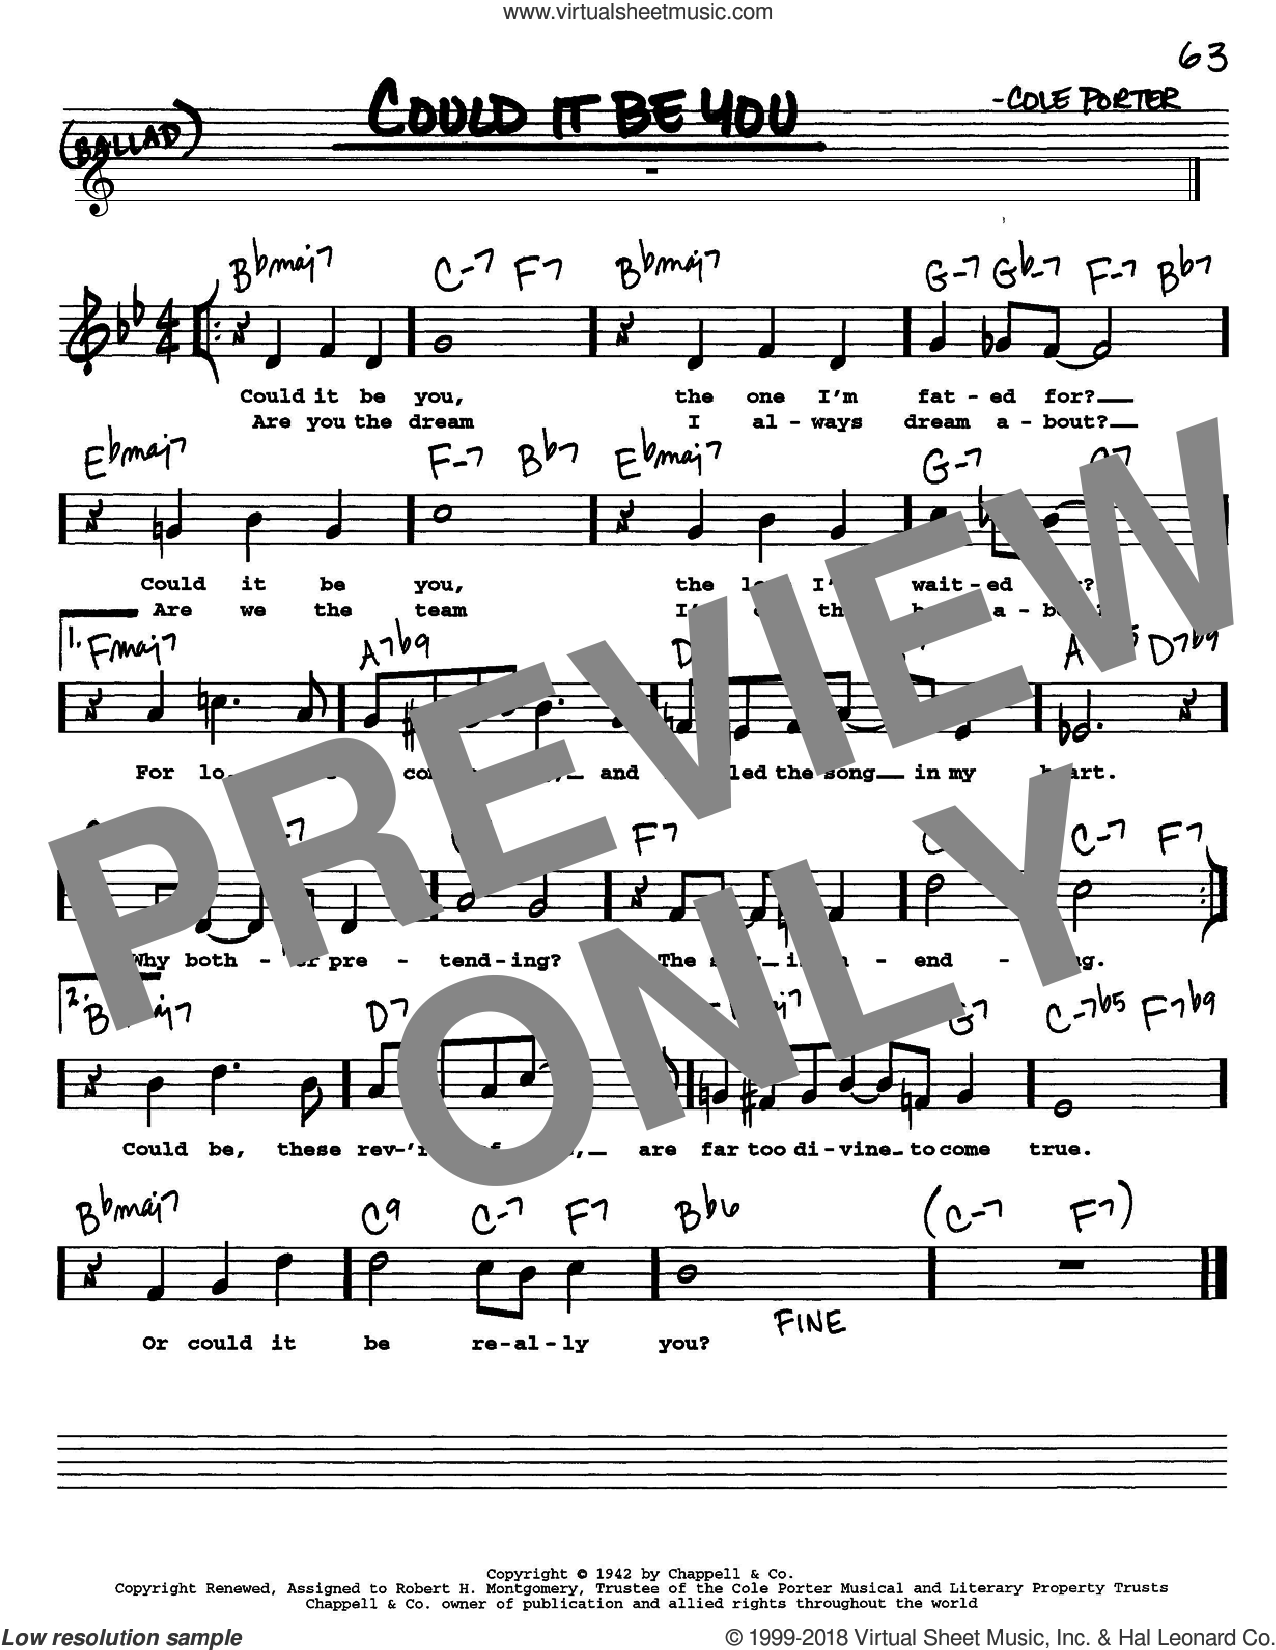 Could It Be You sheet music for voice and other instruments  by Cole Porter, intermediate skill level